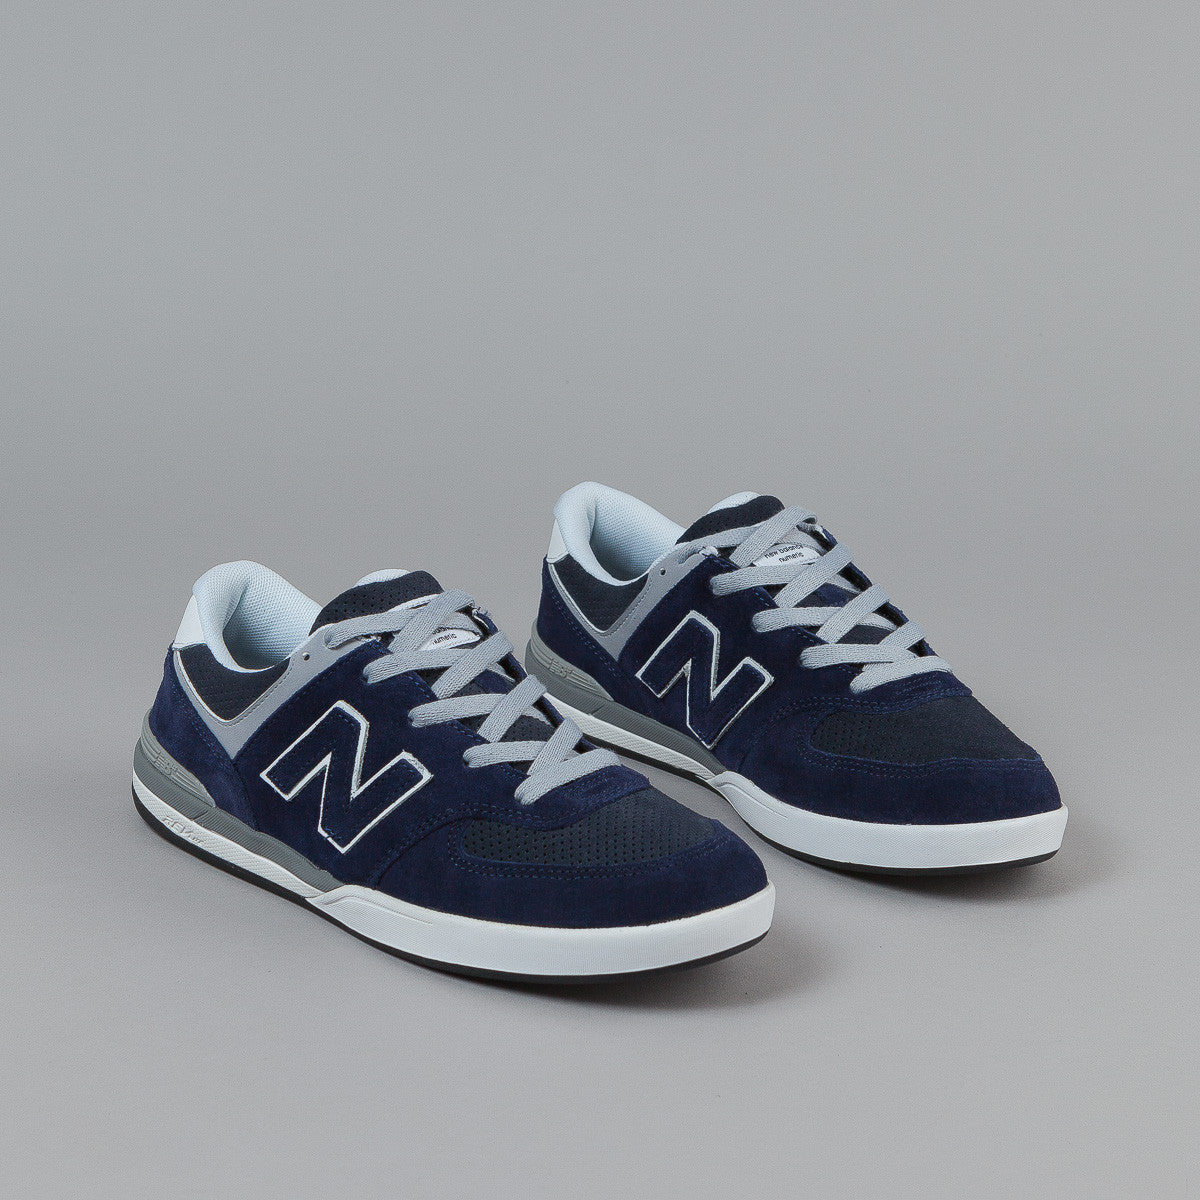 New Balance Numeric Logan S 636 - Navy / Grey